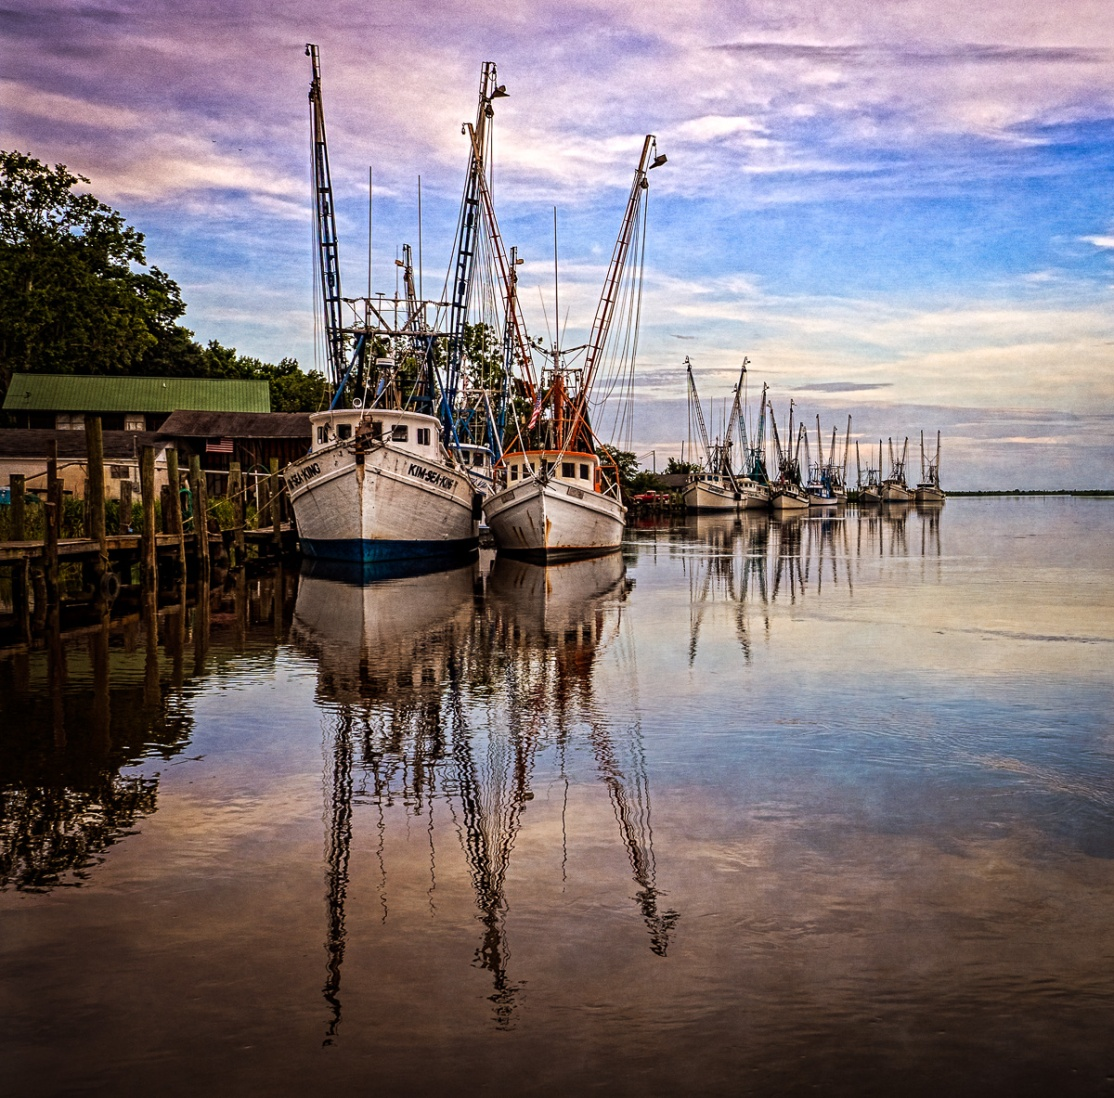 Shrimp Boats, Darien, GA